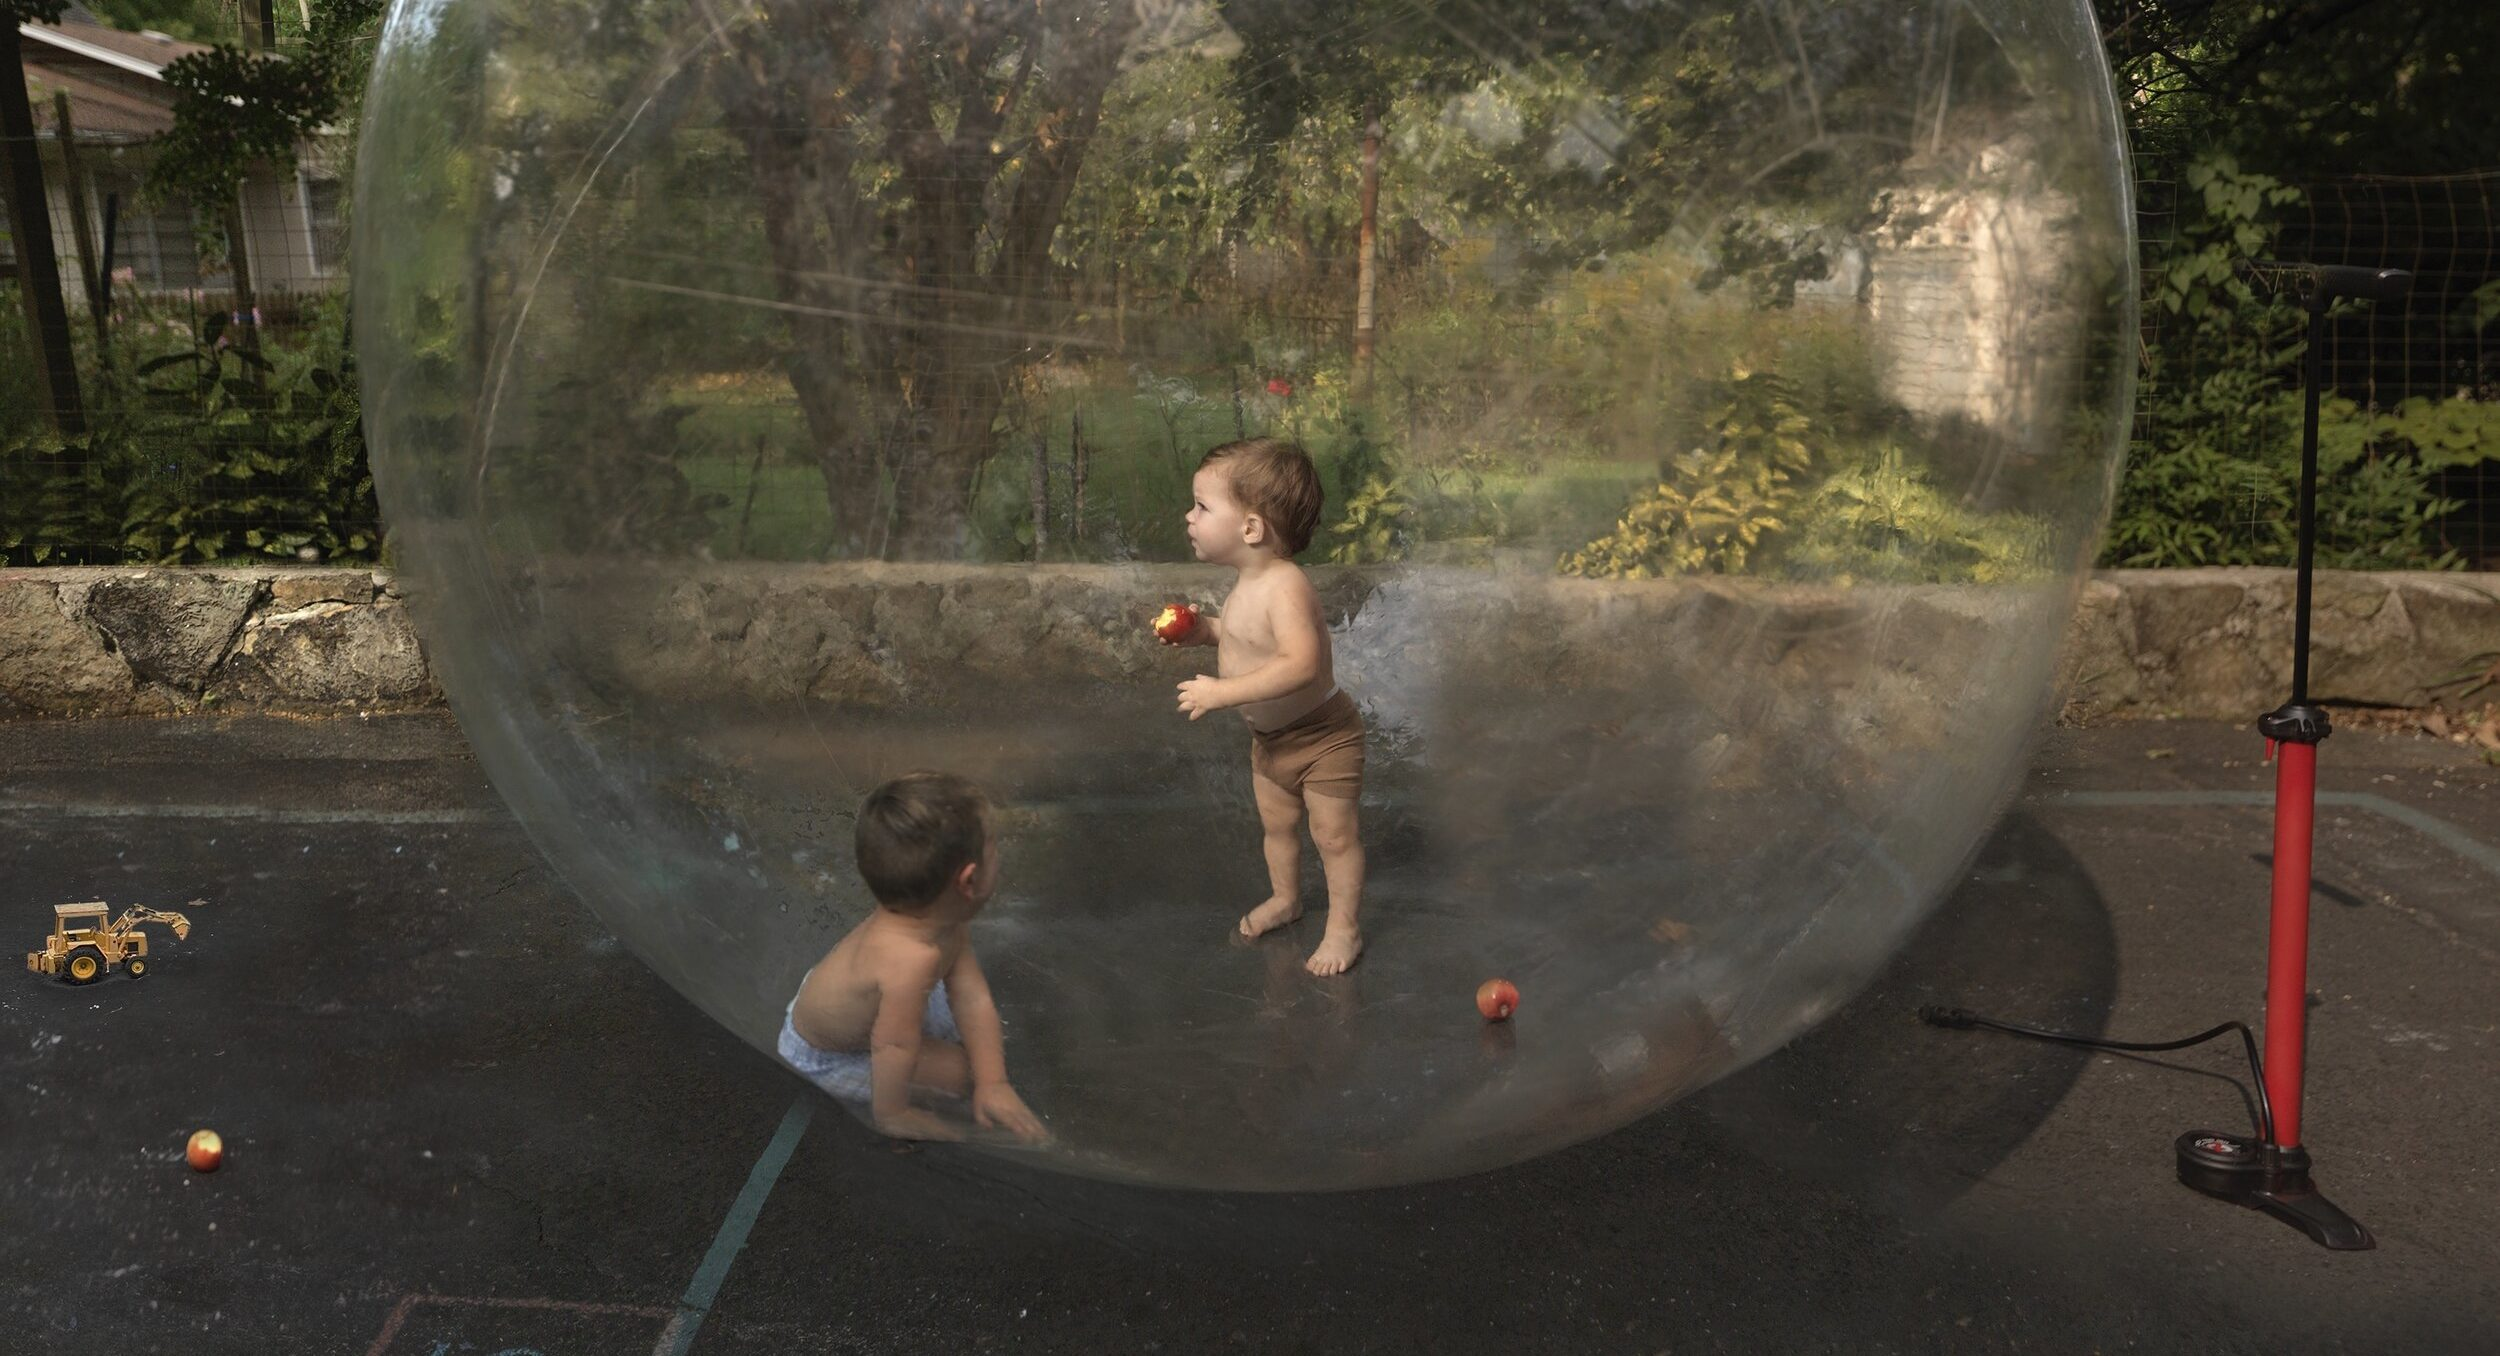 Improvising: New Photographs by Julie Blackmon (Upcoming 2021)